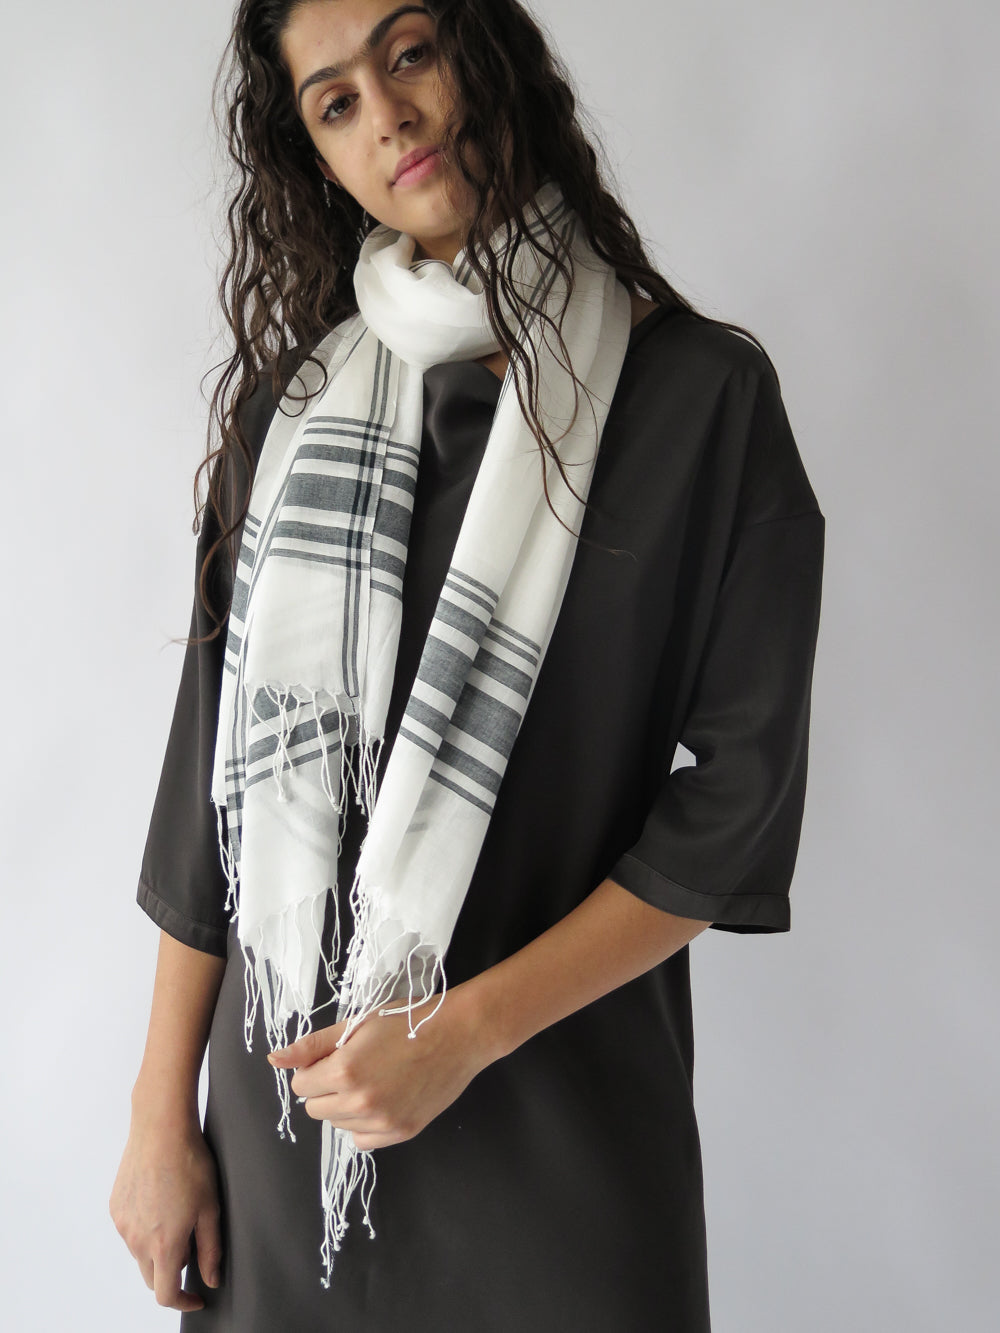 erica tanov x bloom + give cotton scarf